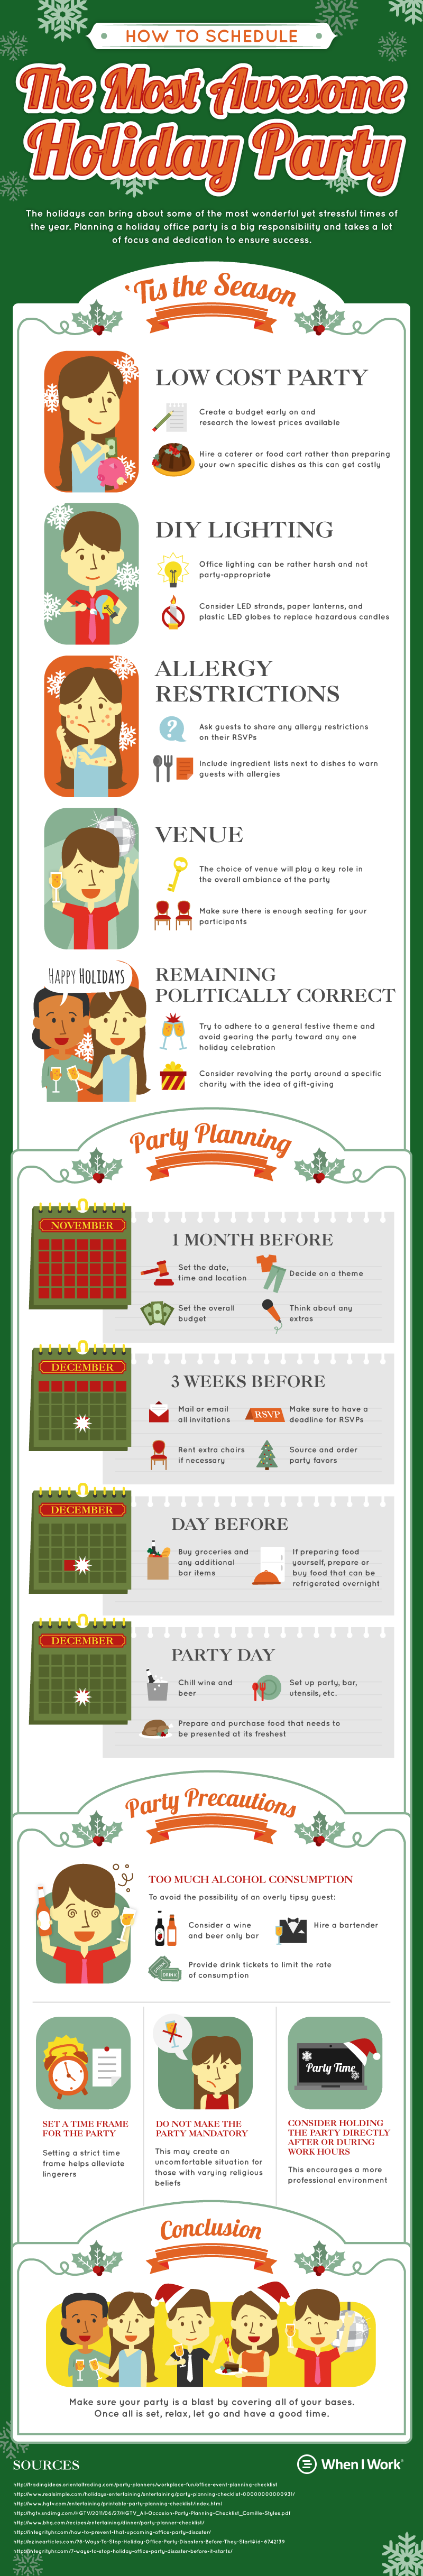 How To Schedule an Awesome Holiday Party